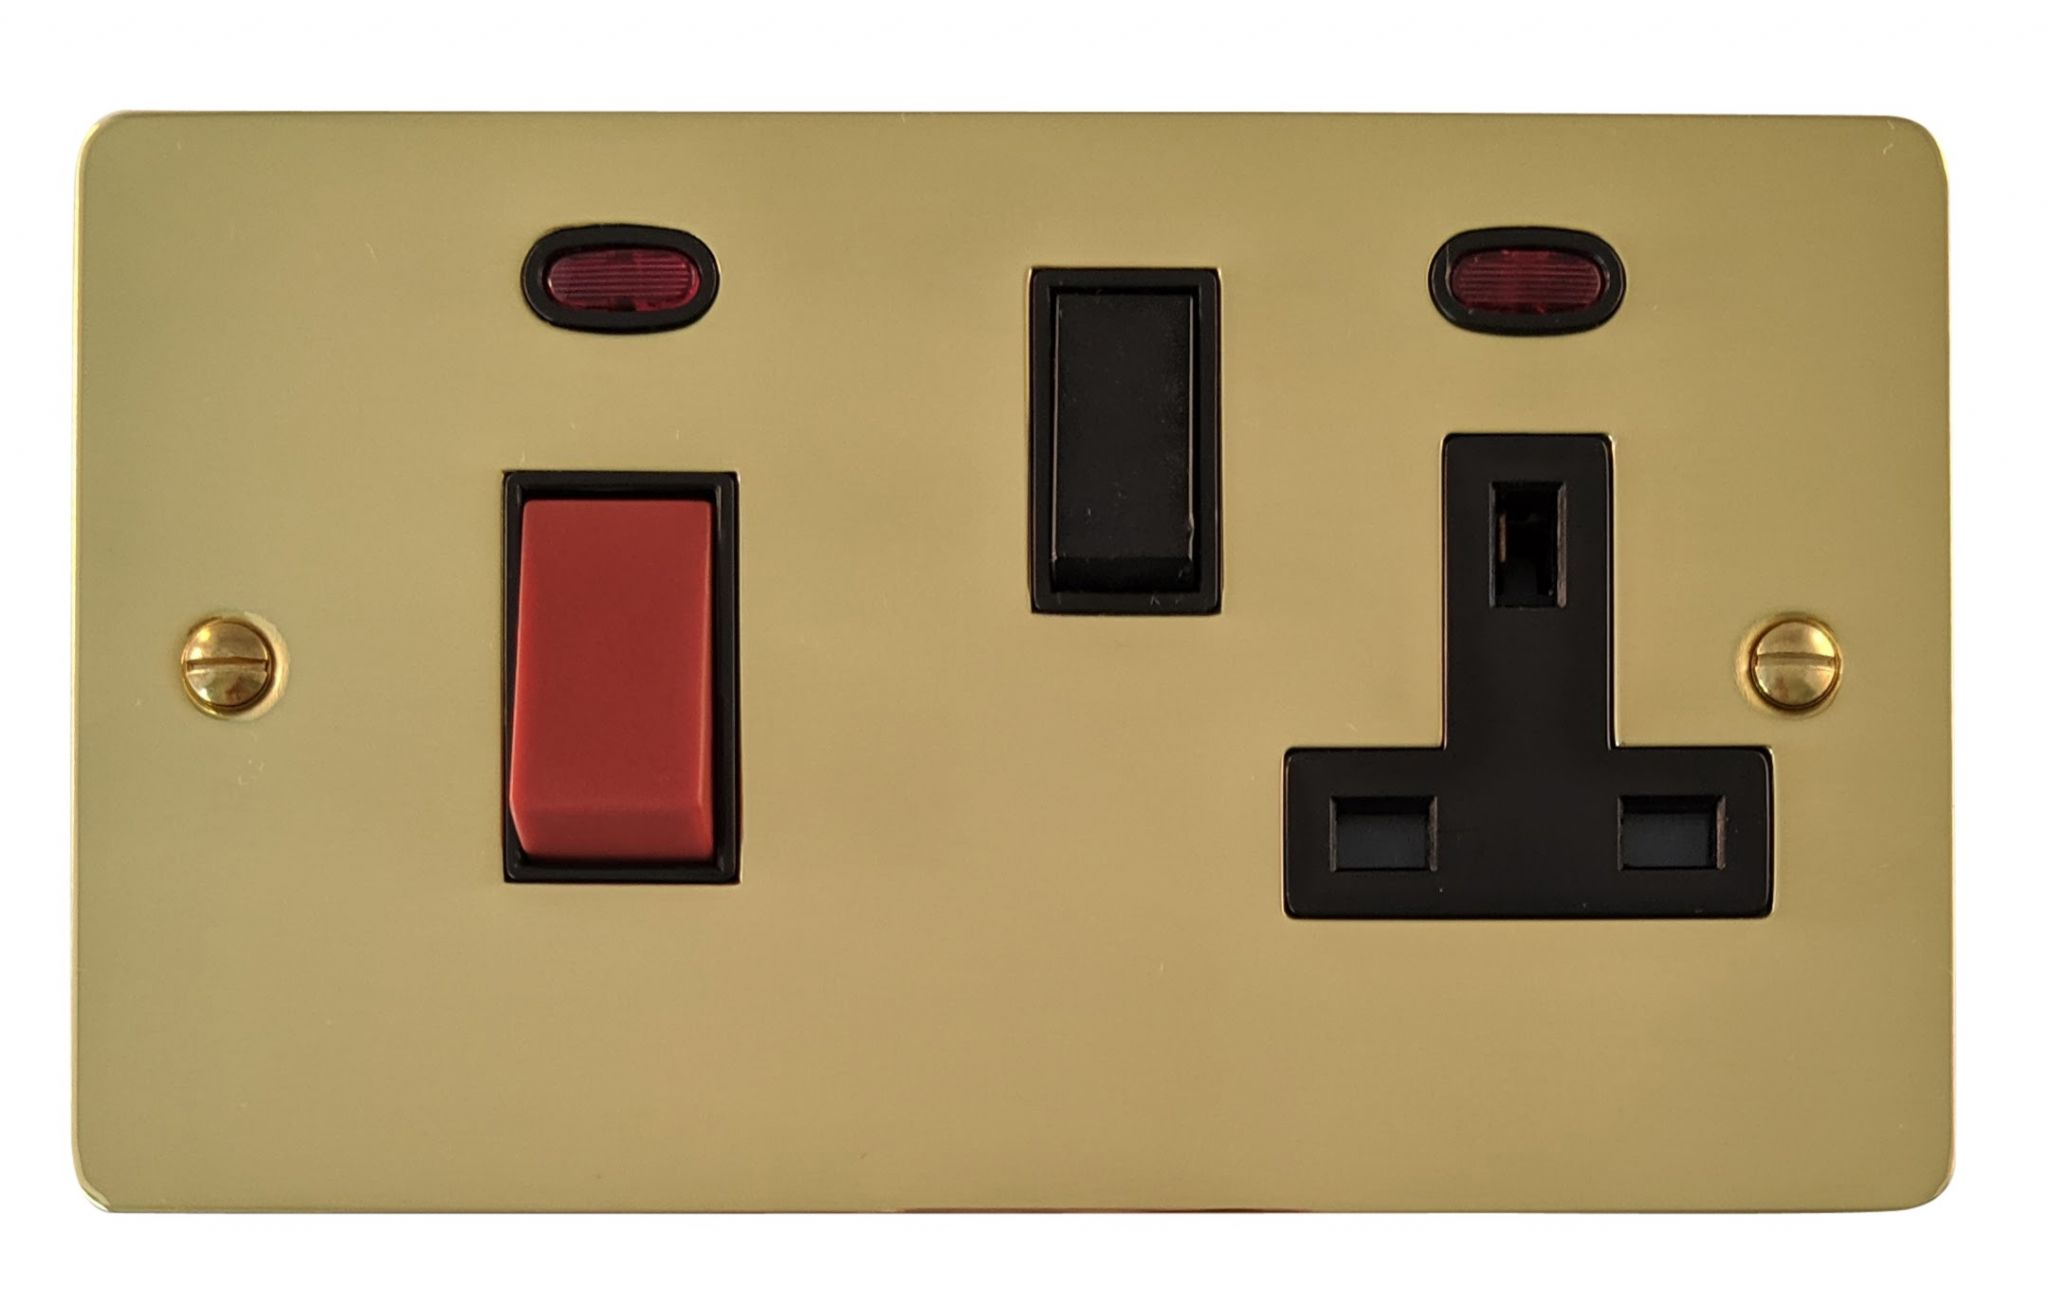 G&H FB29B Flat Plate Polished Brass 45 Amp DP Cooker Switch & 13A Switched Socket